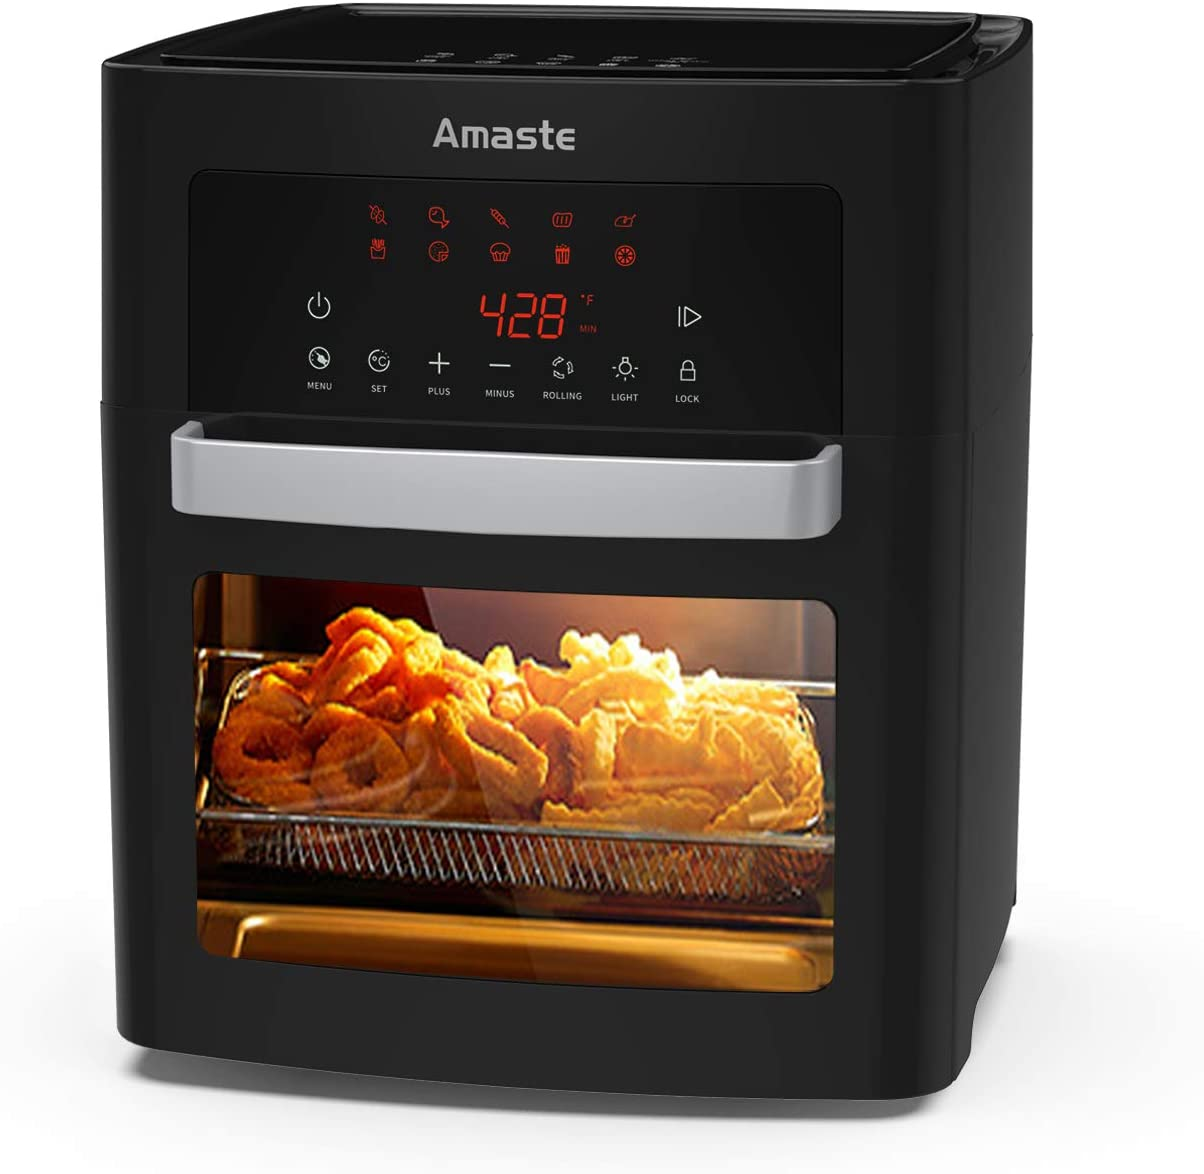 Amaste Air Fryer, 16 Quart XL Size, 1500-W Electric Airfryer, 10-in-1 Smart Cook Presets with LED Digital Touchscreen Rotisserie Oven, Countertop Oven with Adjustable Timer & Temp, Freidora de Aire with Dishwasher Safe Accessories & Recipe Included, Black